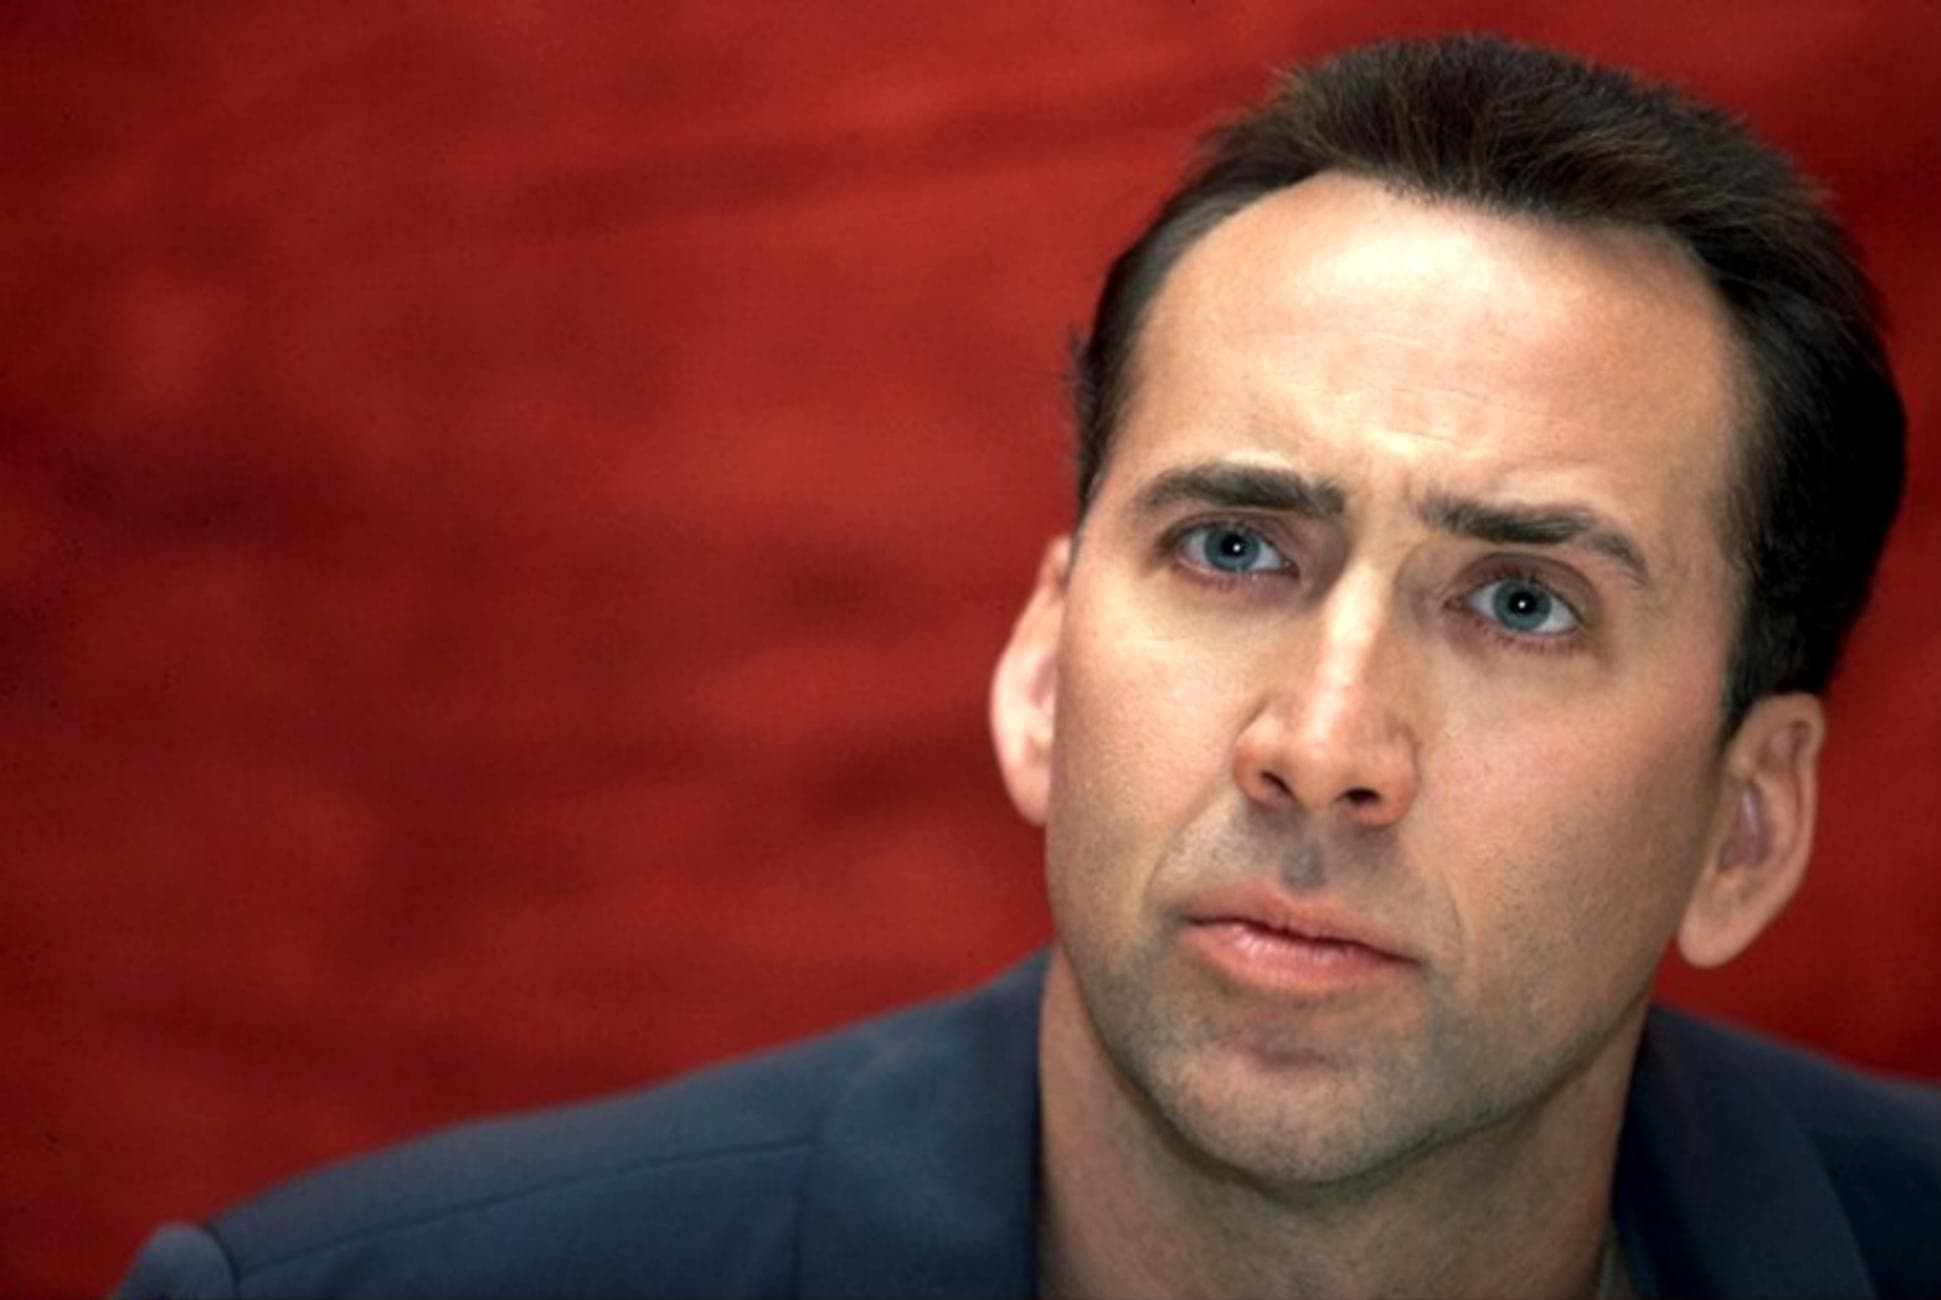 Nicolas Cage Background